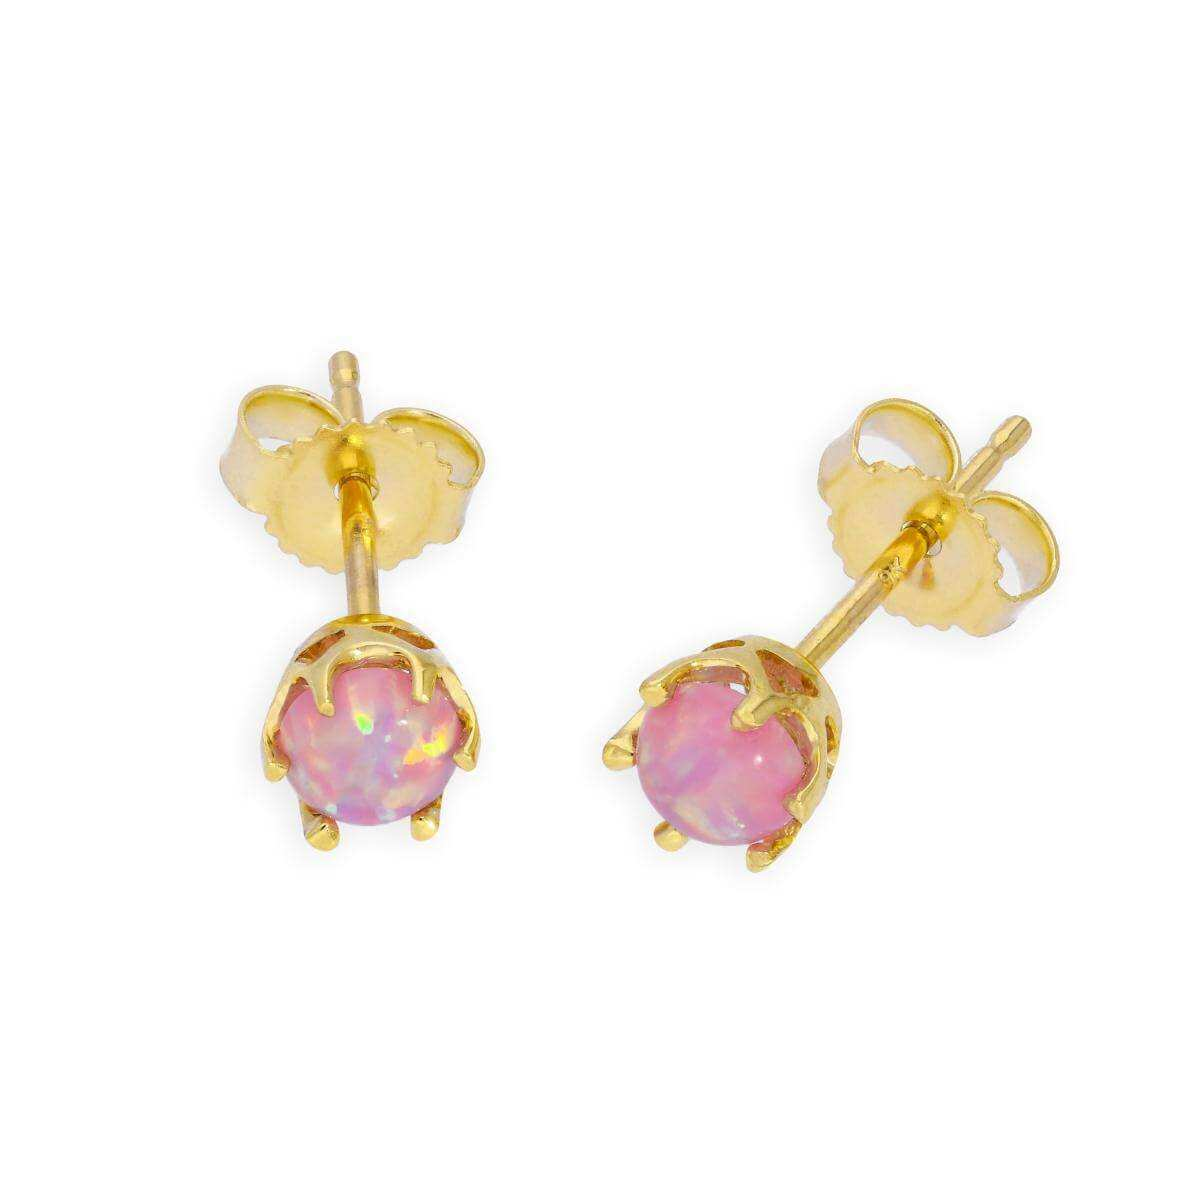 9ct Gold & Pink Opal Genuine Gemstone Stud Earrings